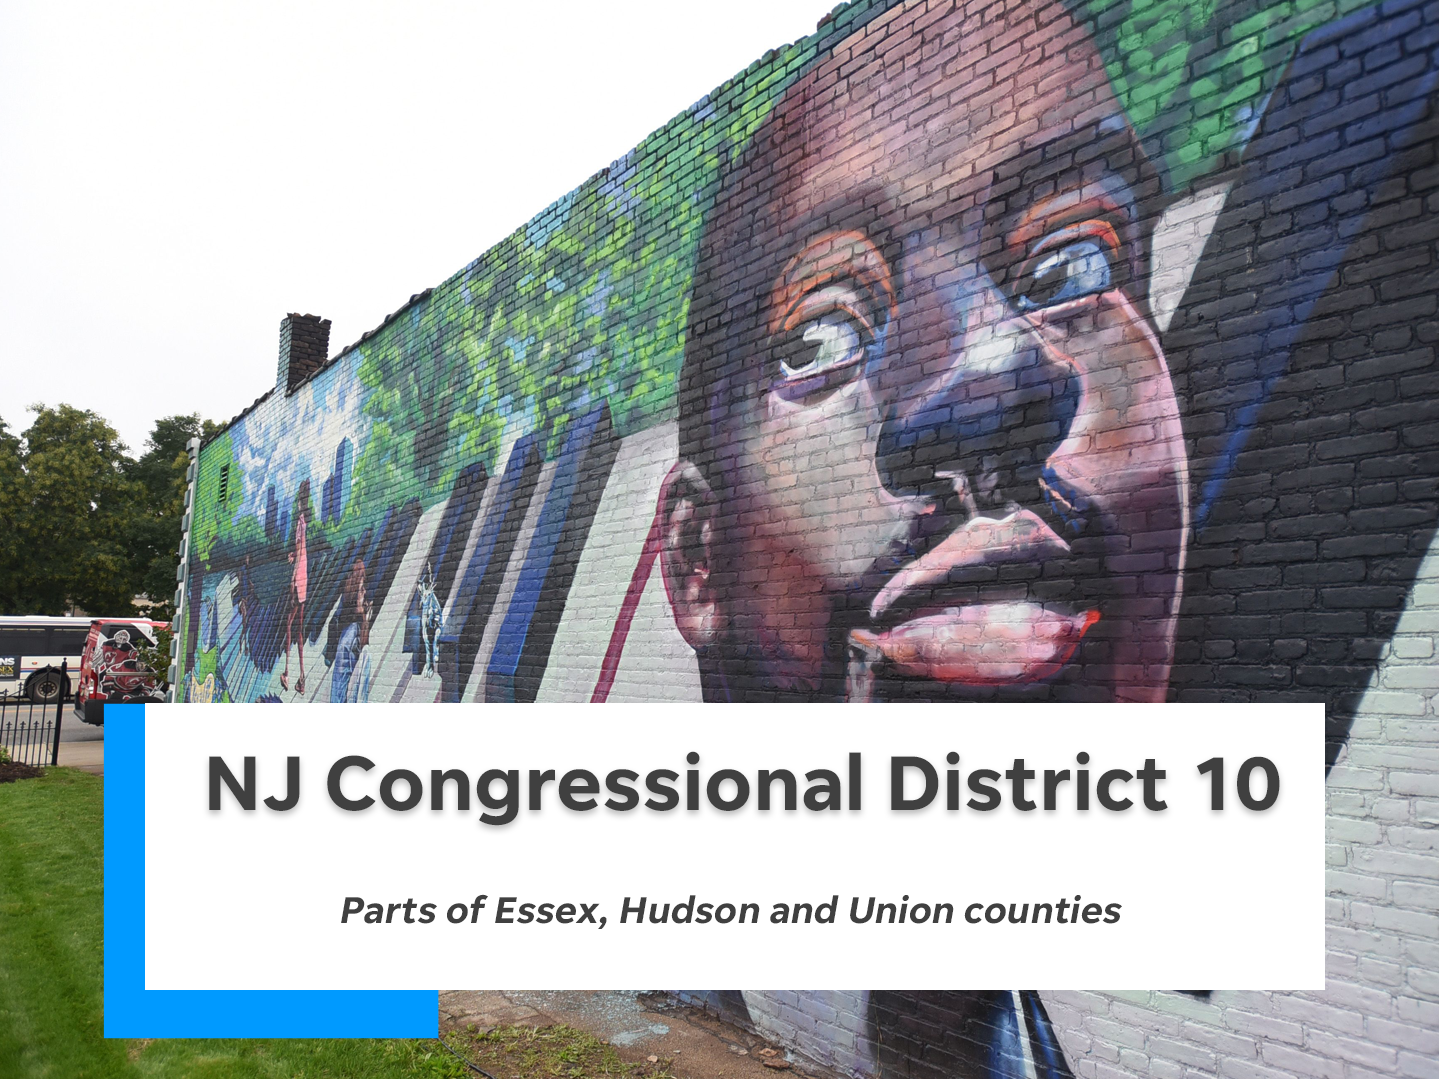 NJ's 10th congressional district is comprised of parts of Essex, Hudson and Union counties